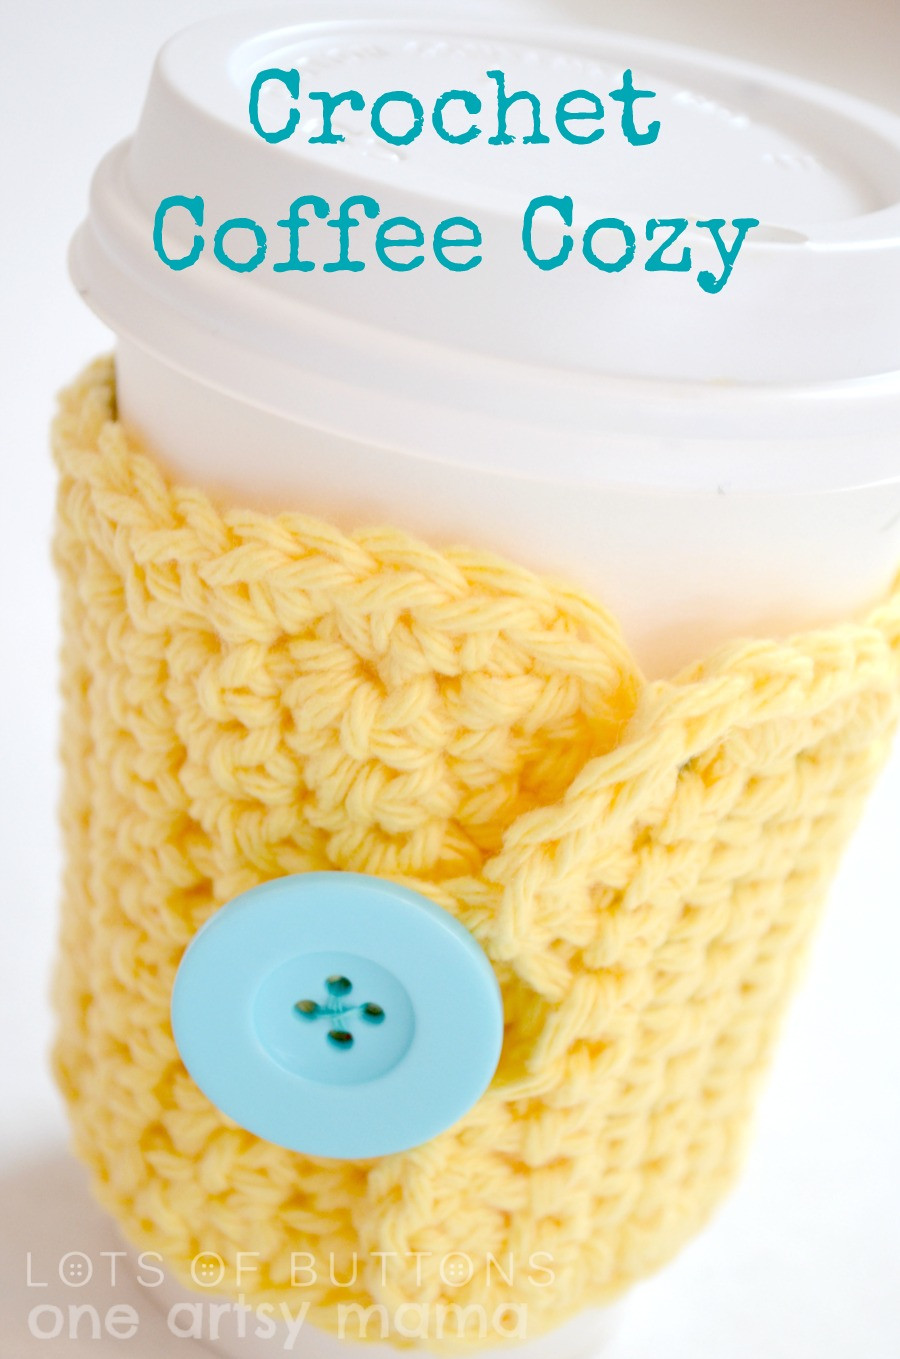 Crochet Coffee Cup Cozy Lovely Crochet Coffee Cozy Amy Latta Creations Of Crochet Coffee Cup Cozy Inspirational Crochet Coffee Cup Cozy Pattern Pdf Download Coffee Cup Cozy